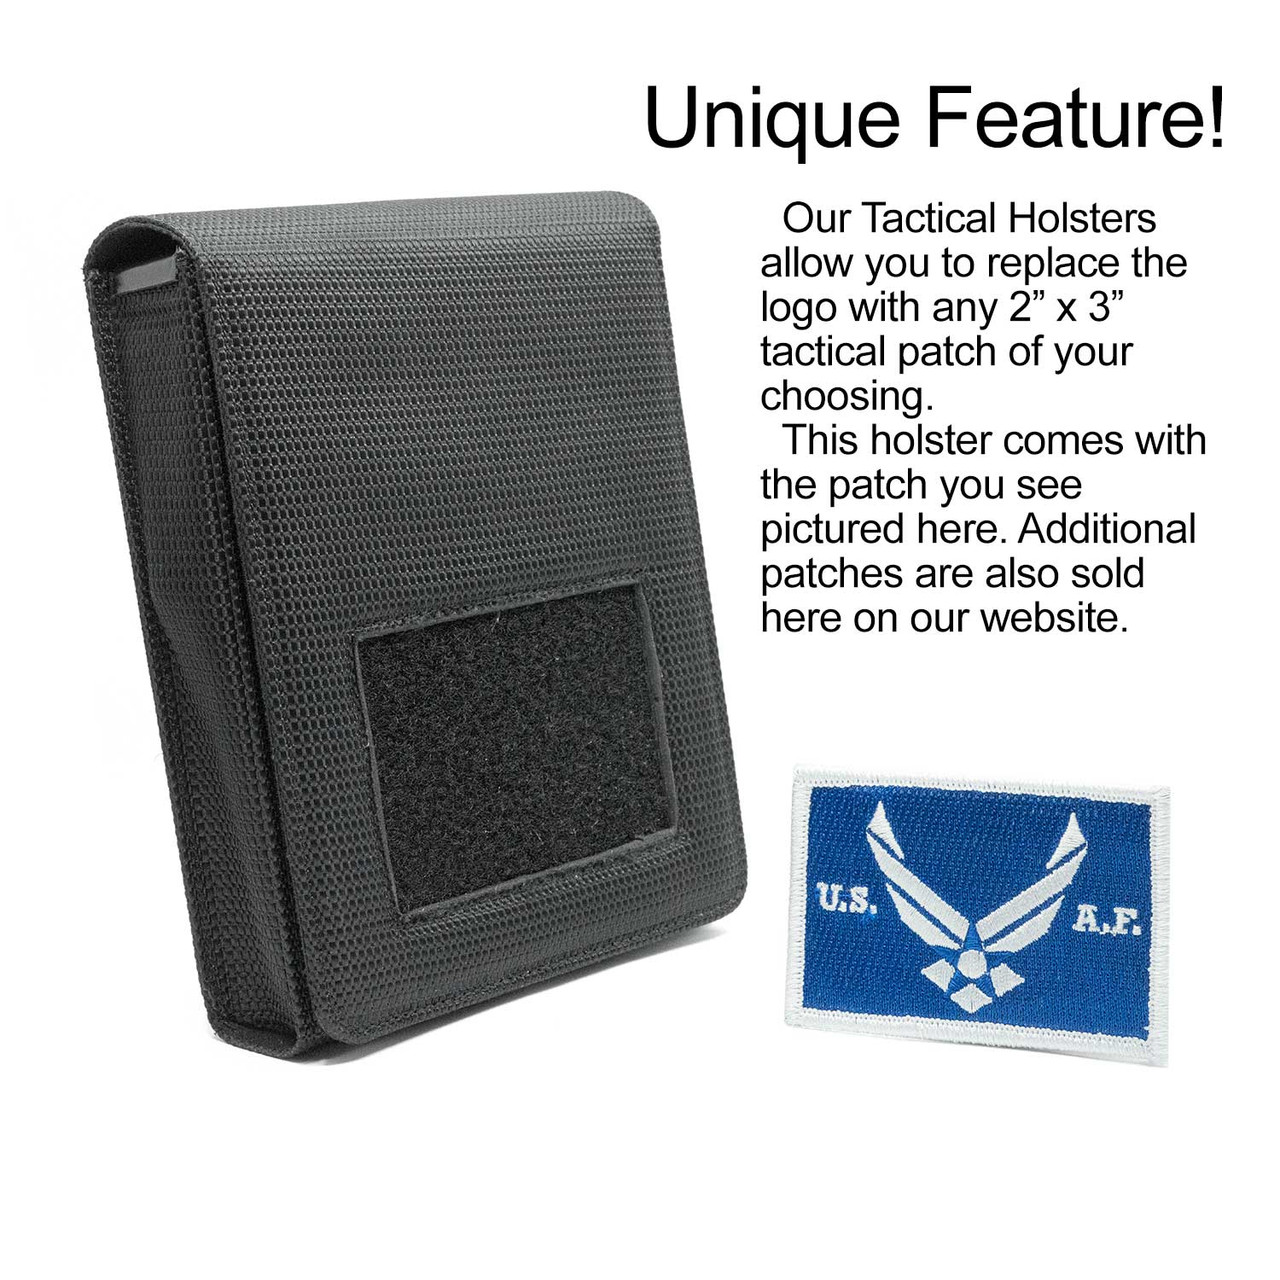 Taurus G2C Air Force Tactical Patch Holster